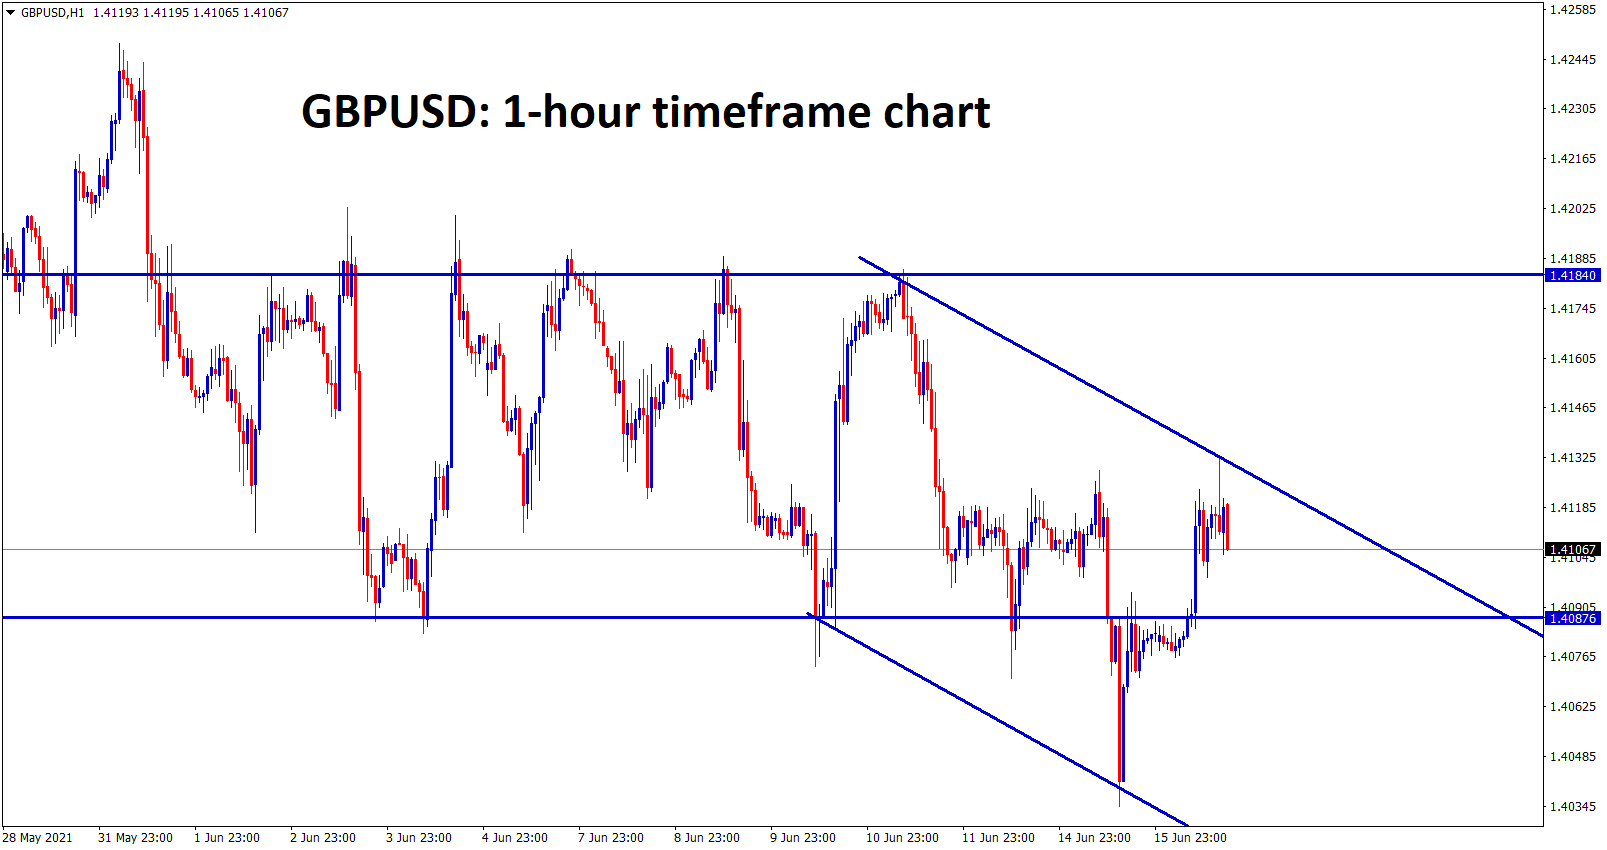 GBPUSD is moving between the channel and SR ranges